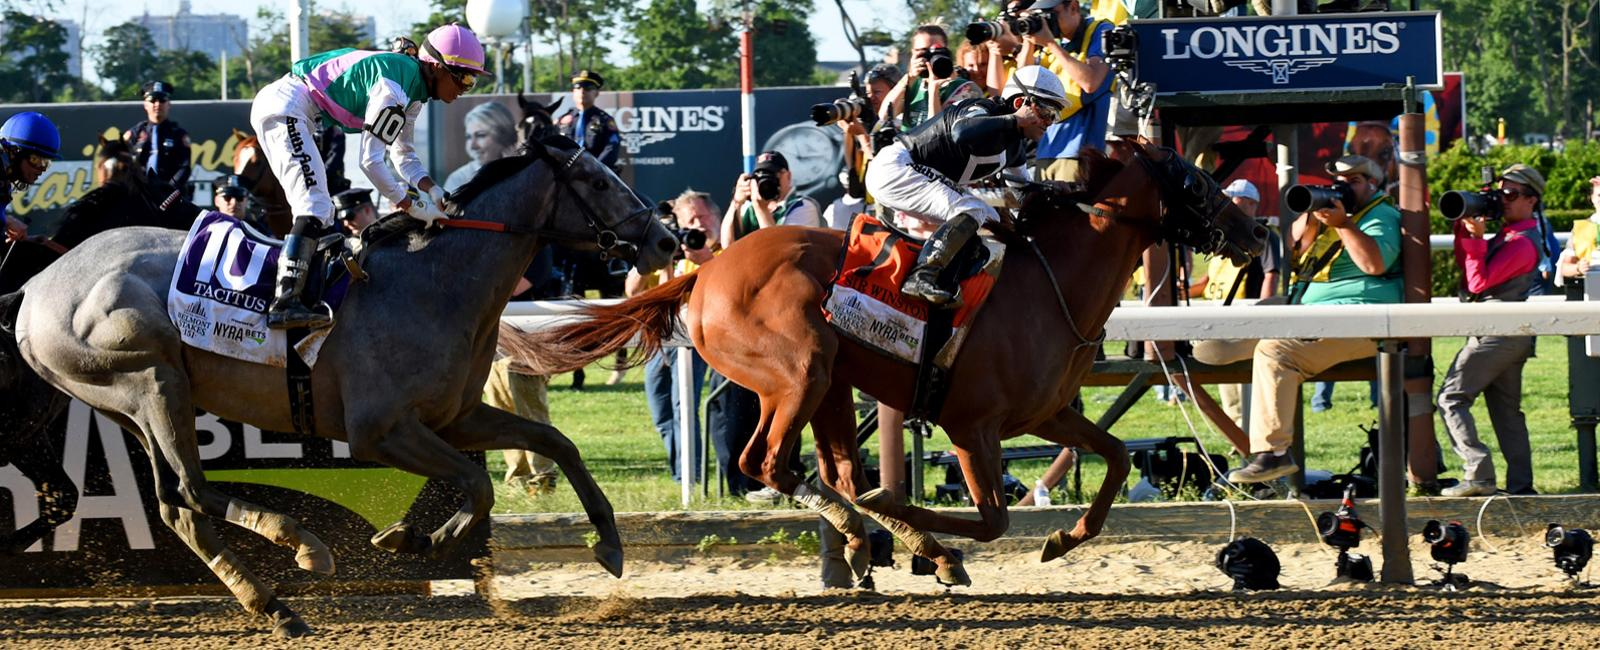 Longines times Sir Winston's victory at the 2019 Belmont Stakes